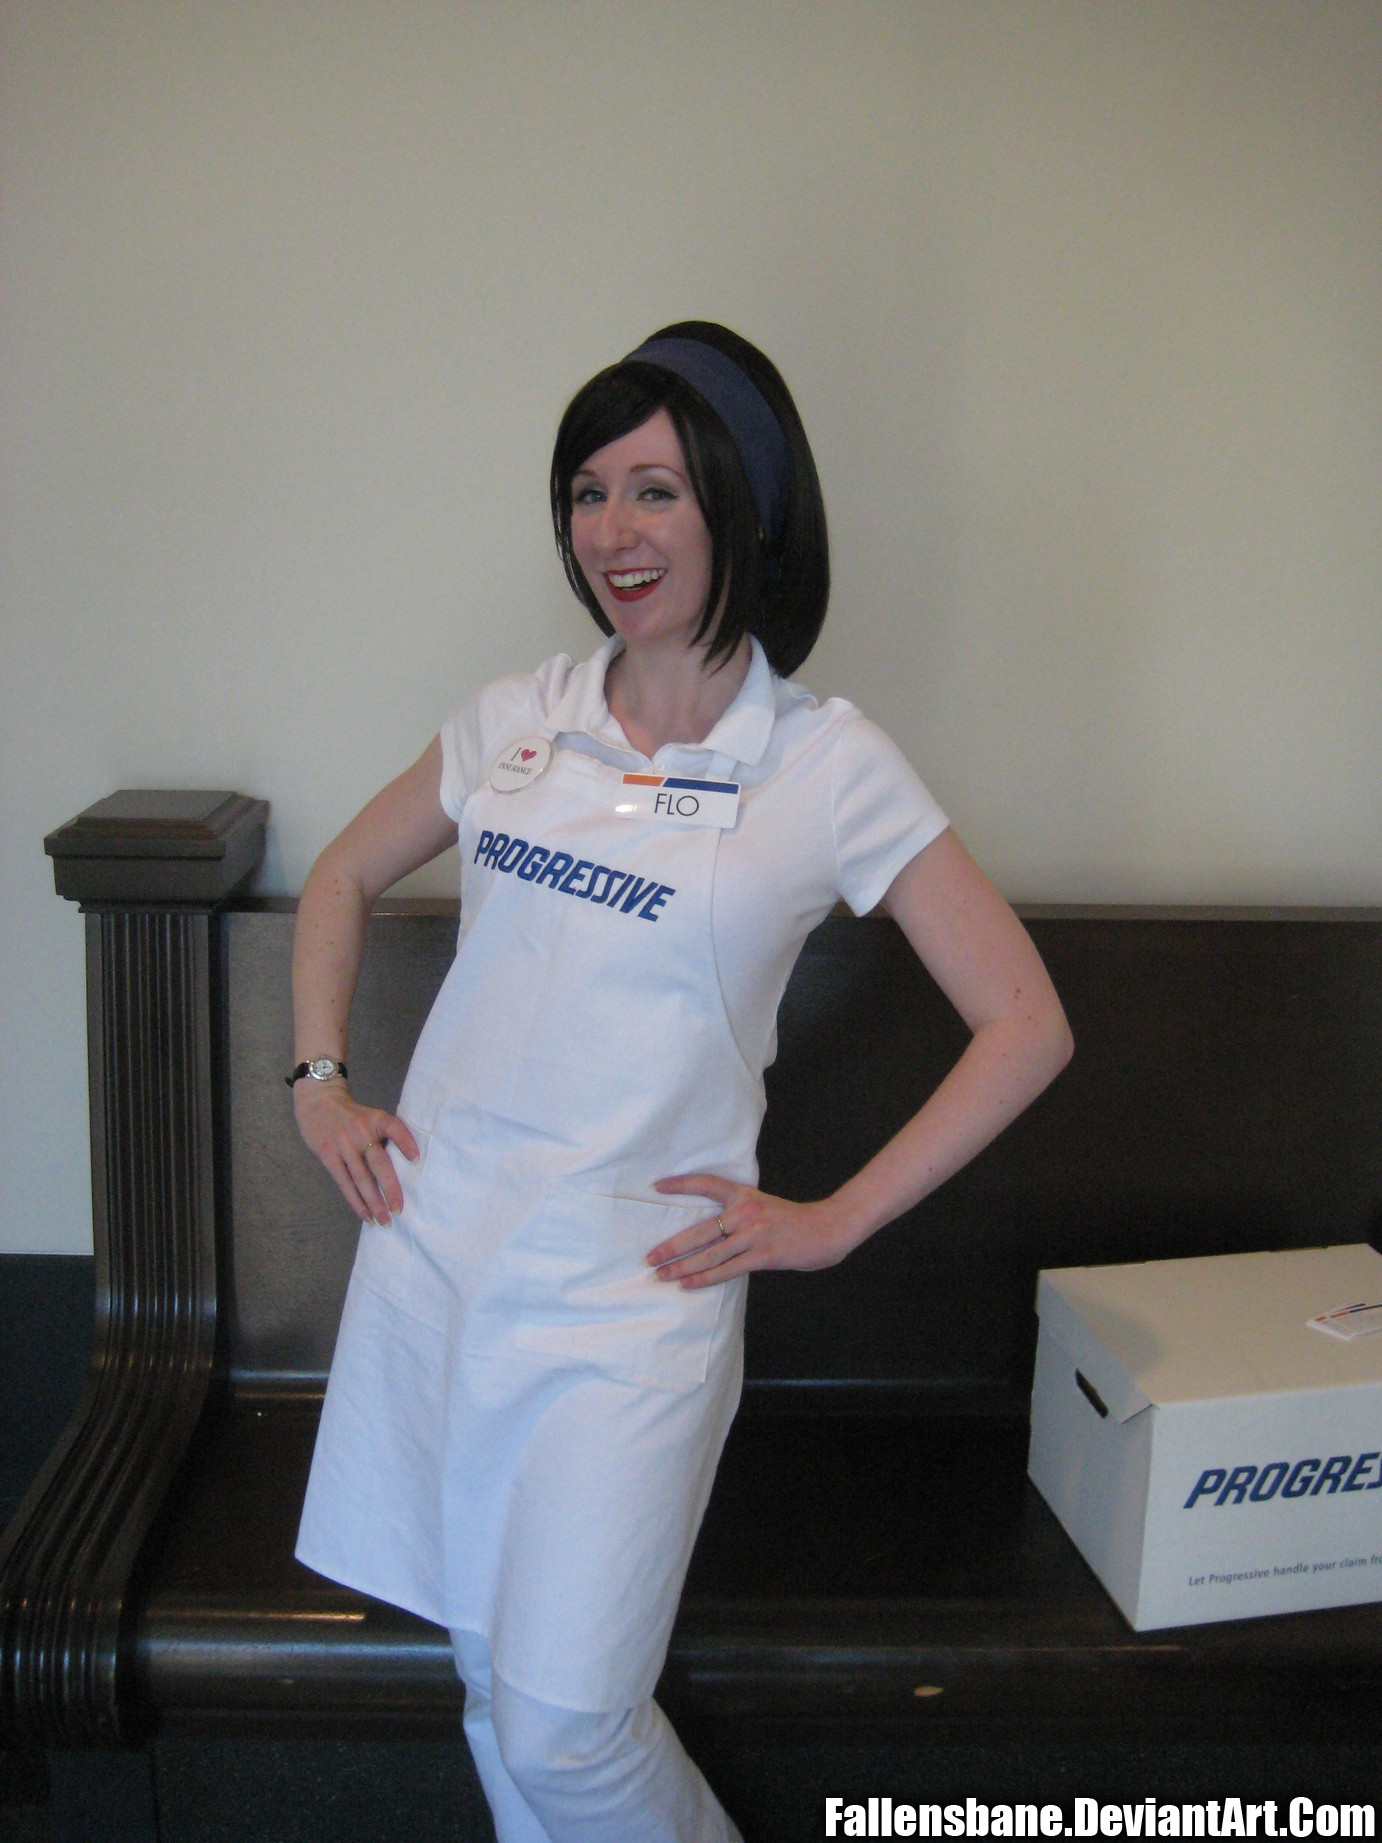 Flo progress anime boston 2010 by fallensbane on deviantart - Flo progressive wallpaper ...